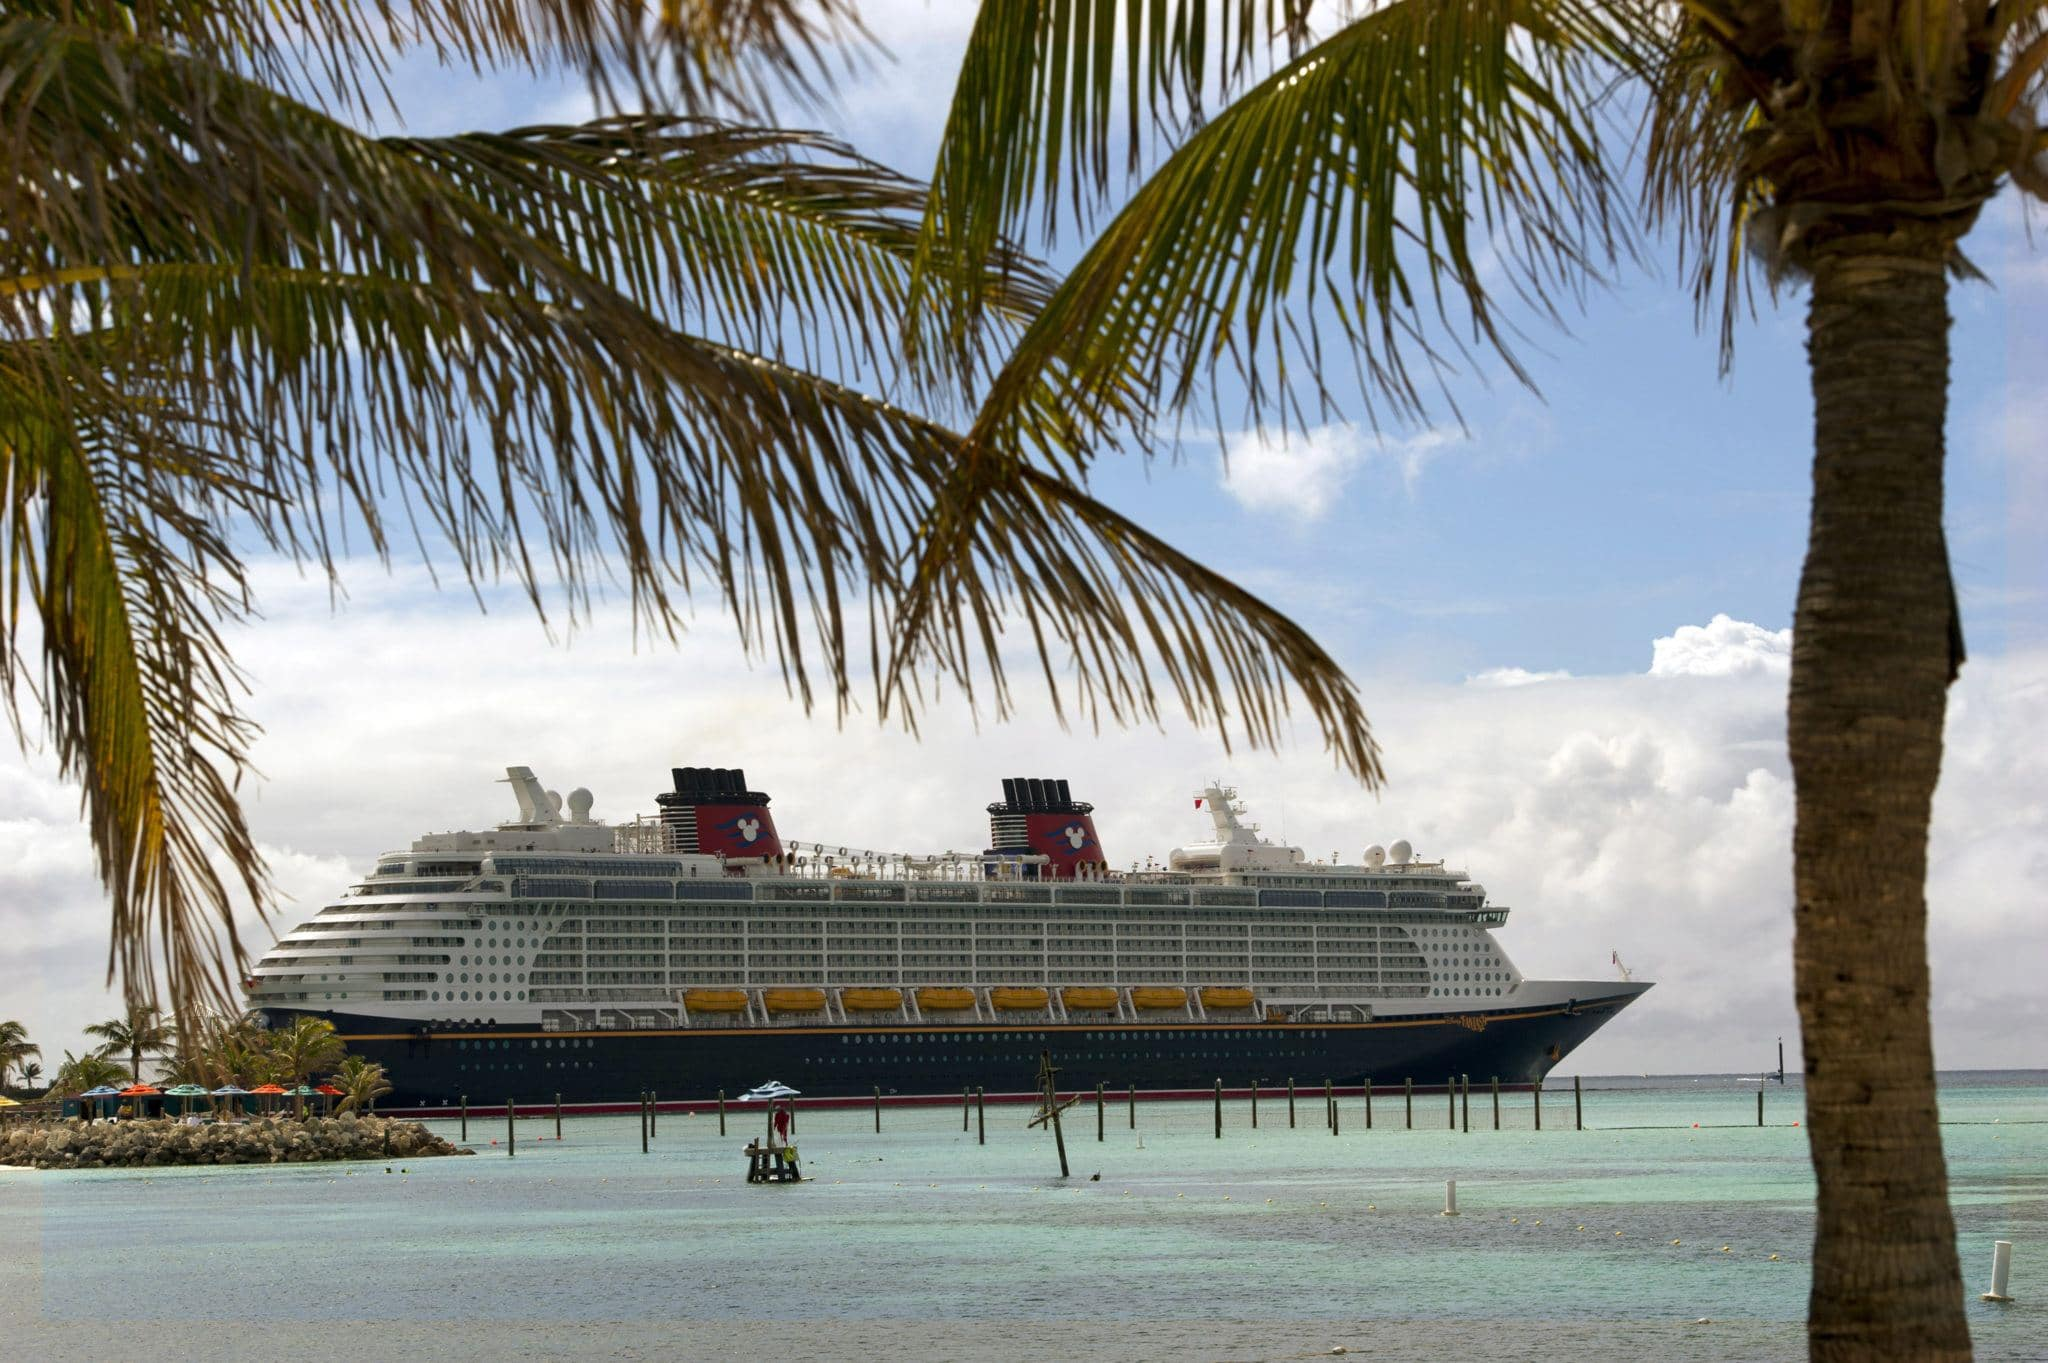 Disney Fantasy docked at Castaway Cay, a private island owned by Disney in the Bahamas